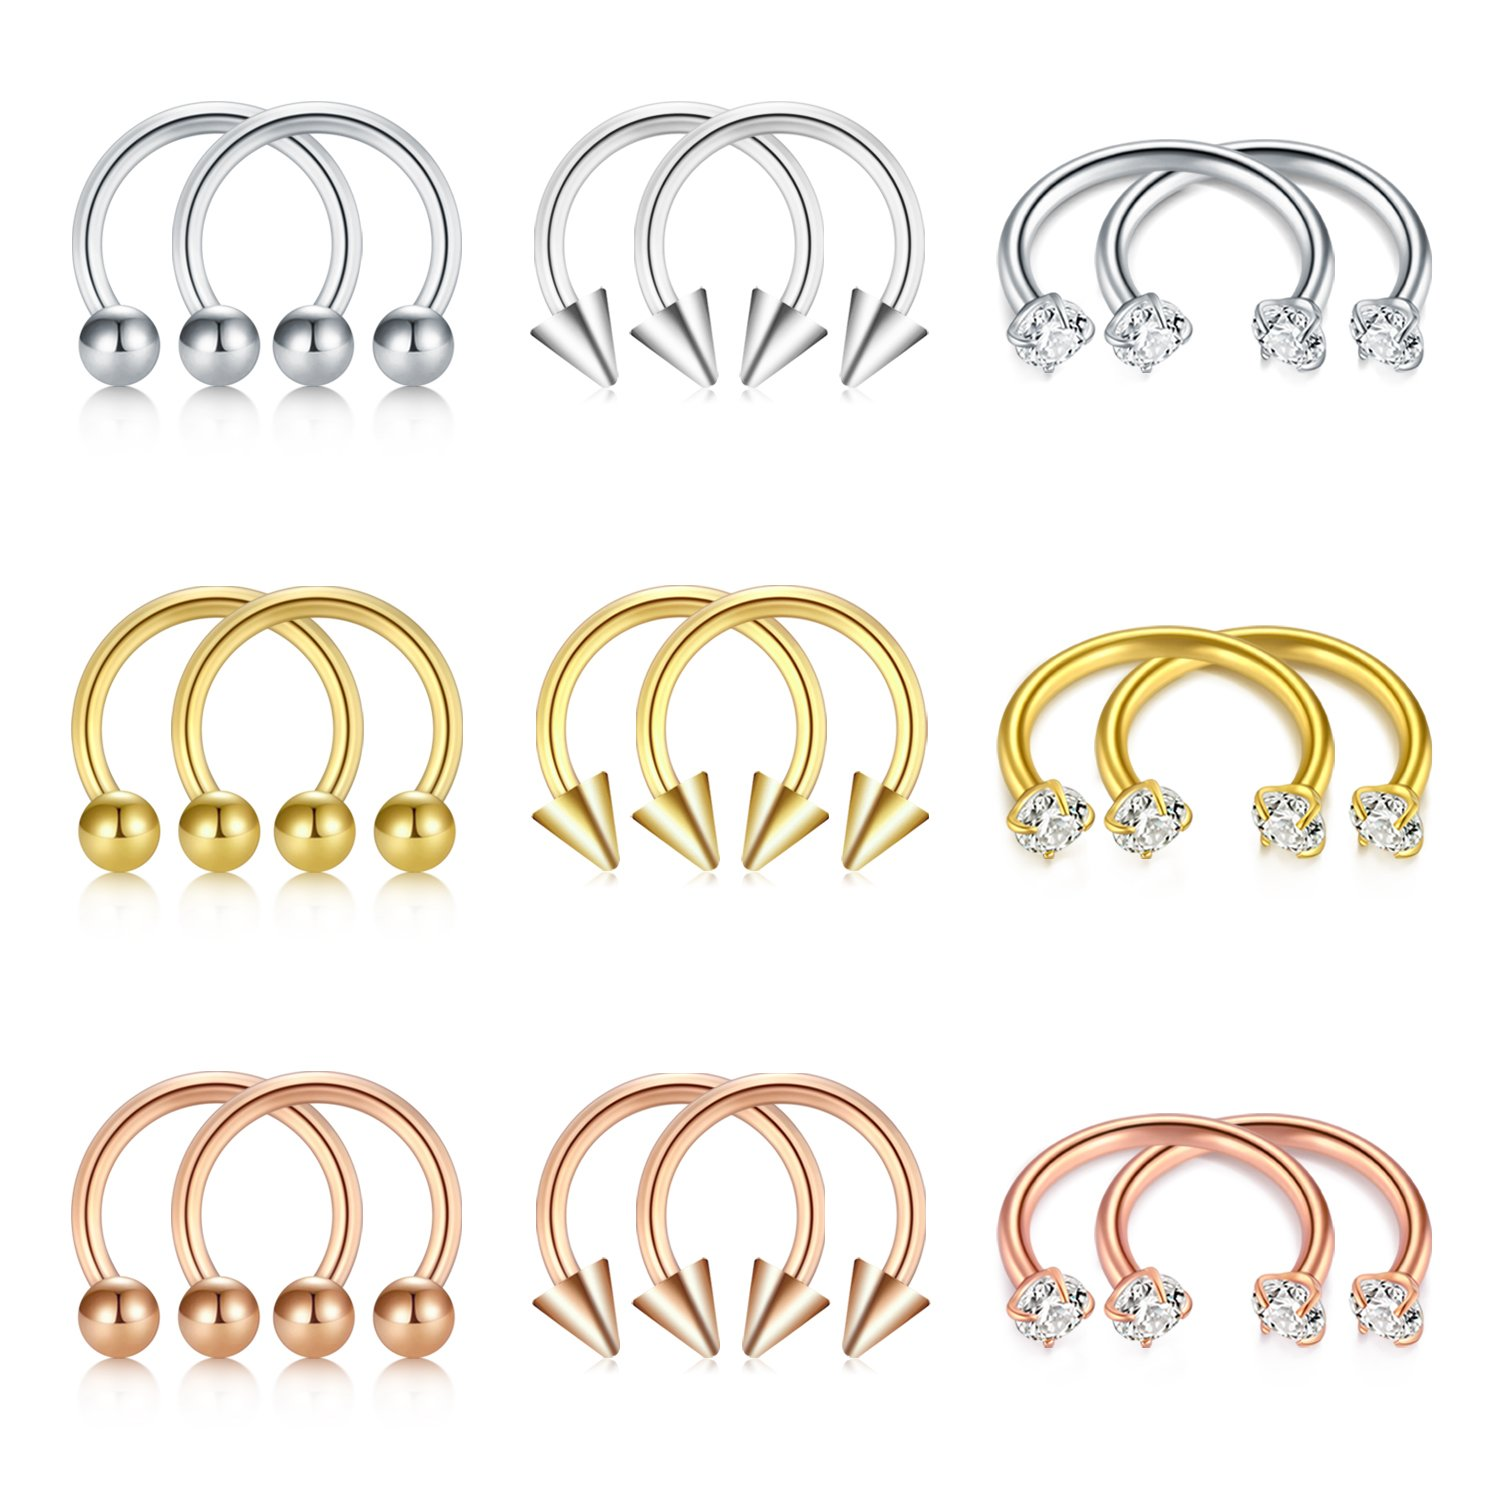 D.Bella Bull Nose Ring, 16G Horseshoe Hoop 8mm Nose Ring Septumring Cartilage Earring Lip Eyebrow Tragus Piercing D.Bella Septum Jewelry DB16-045-1MC